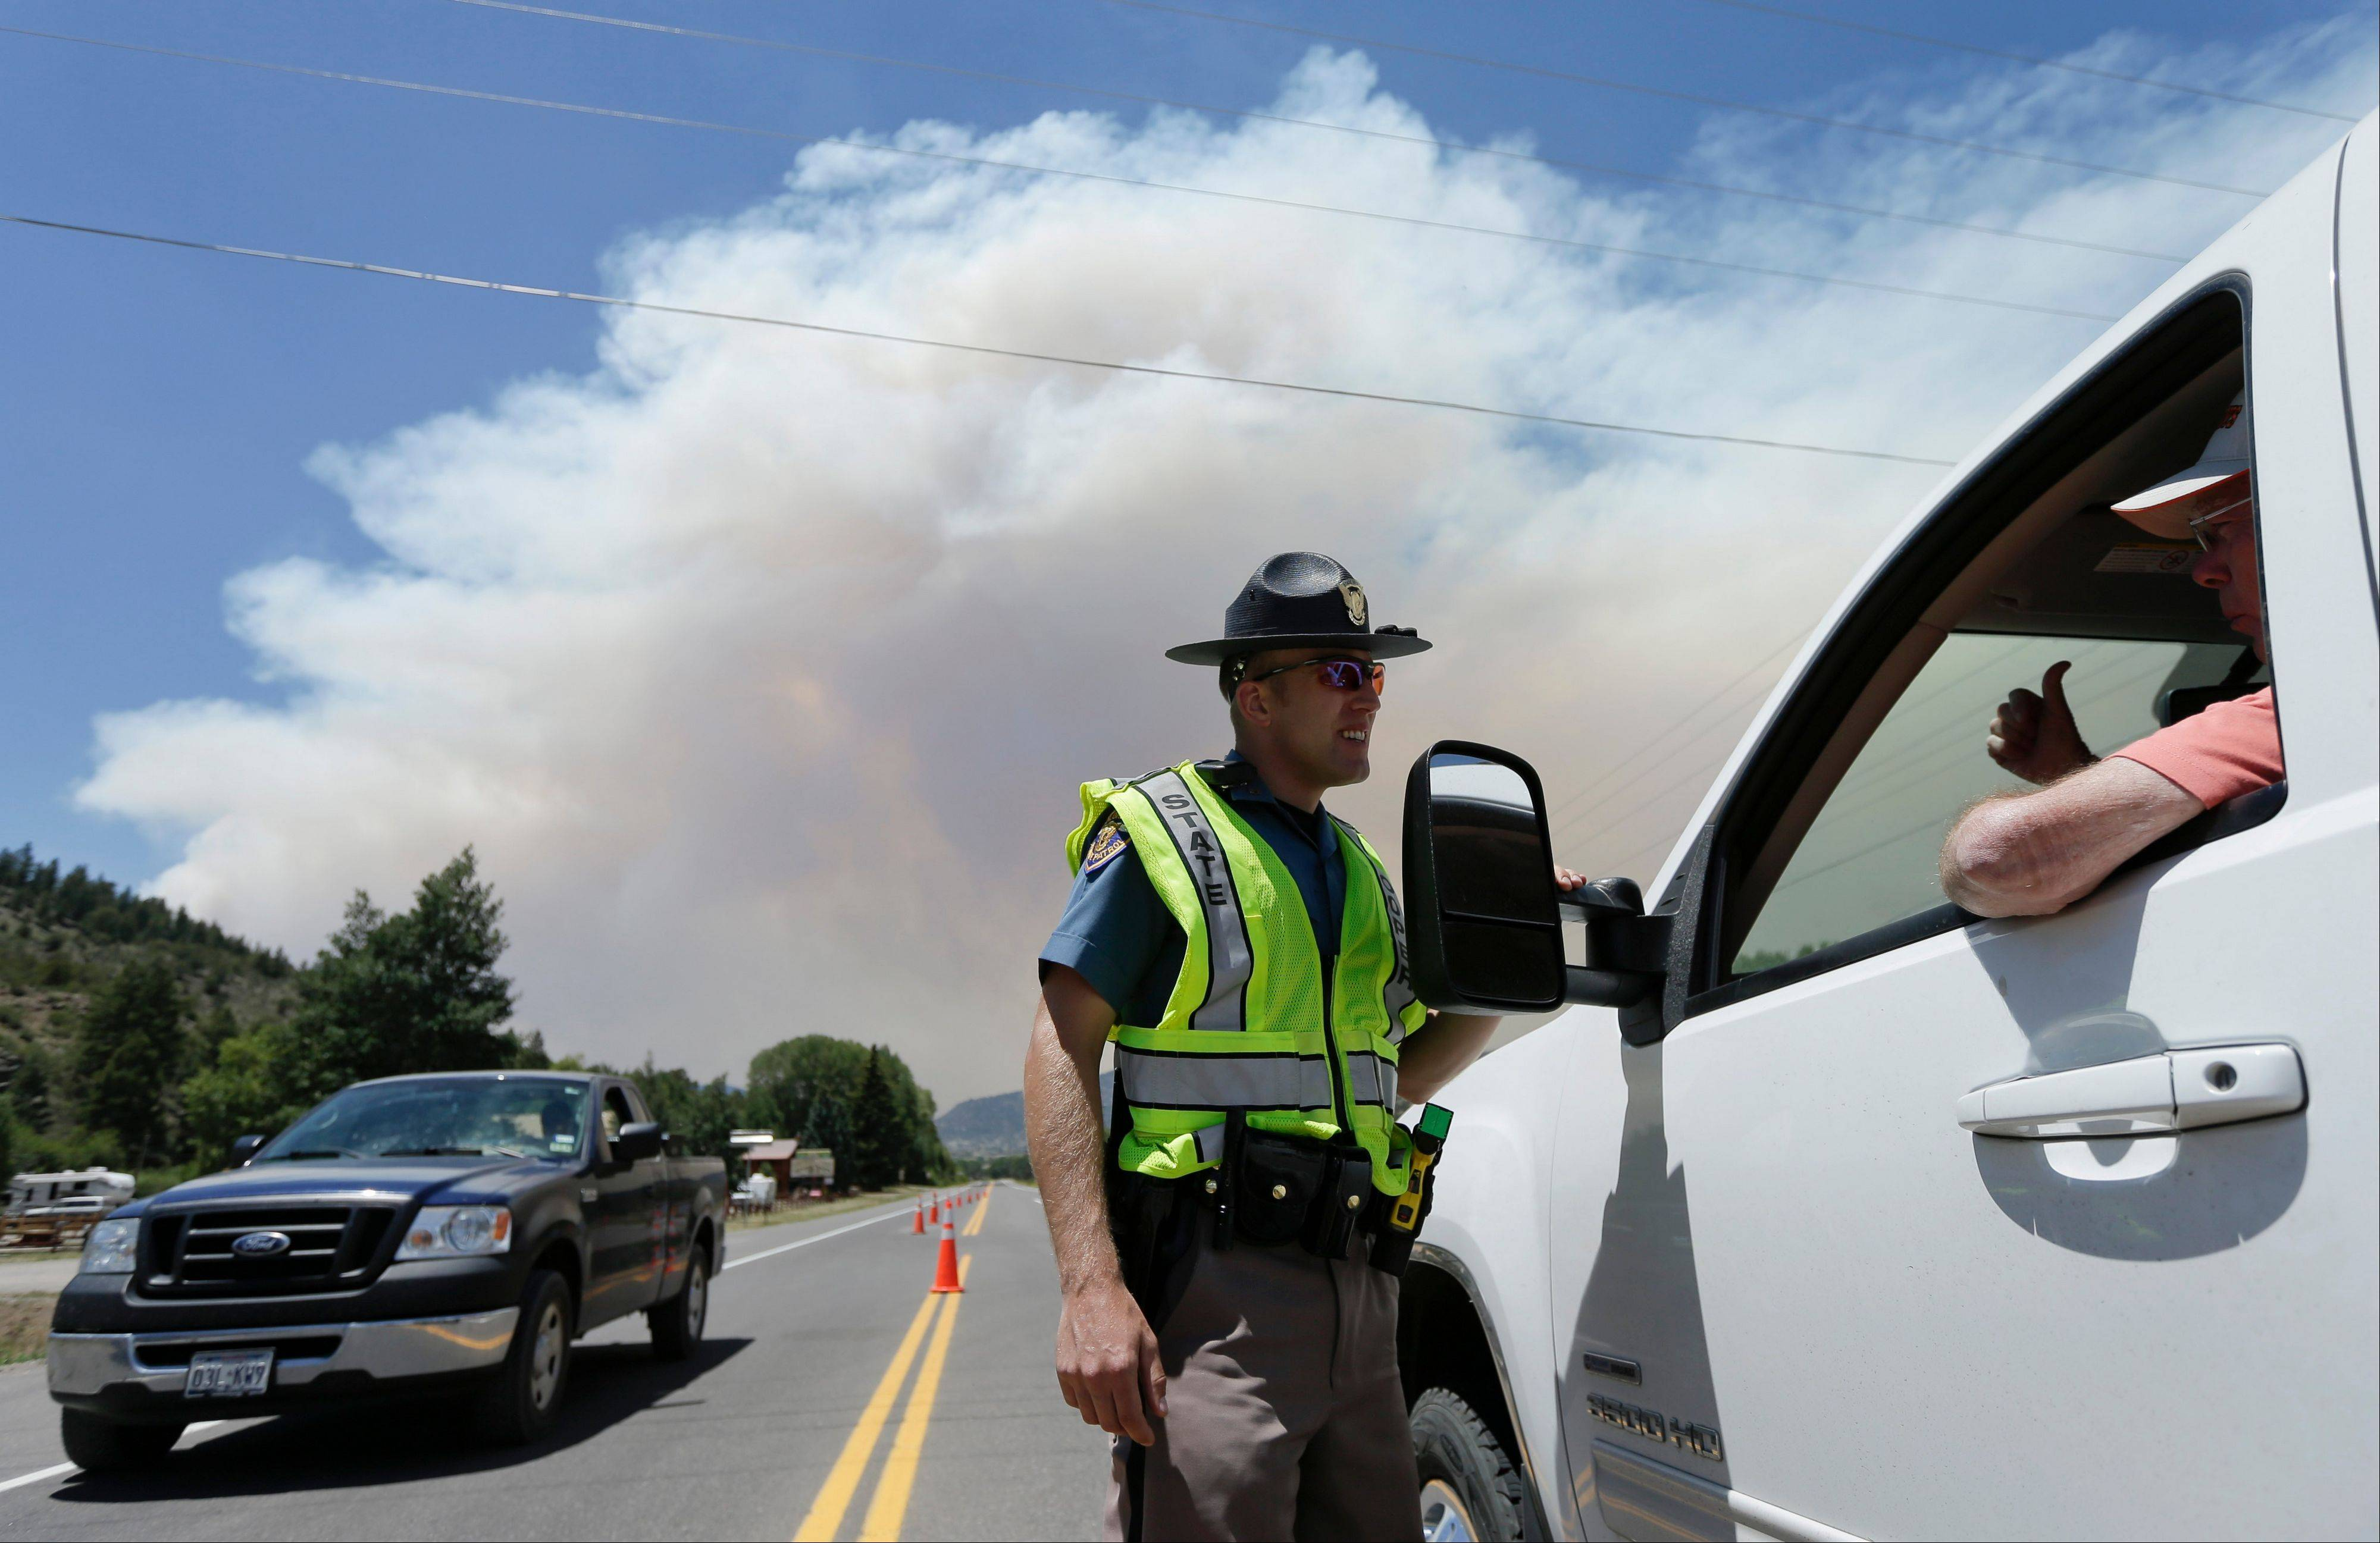 Fire rages, Colorado town braces for long evacuation